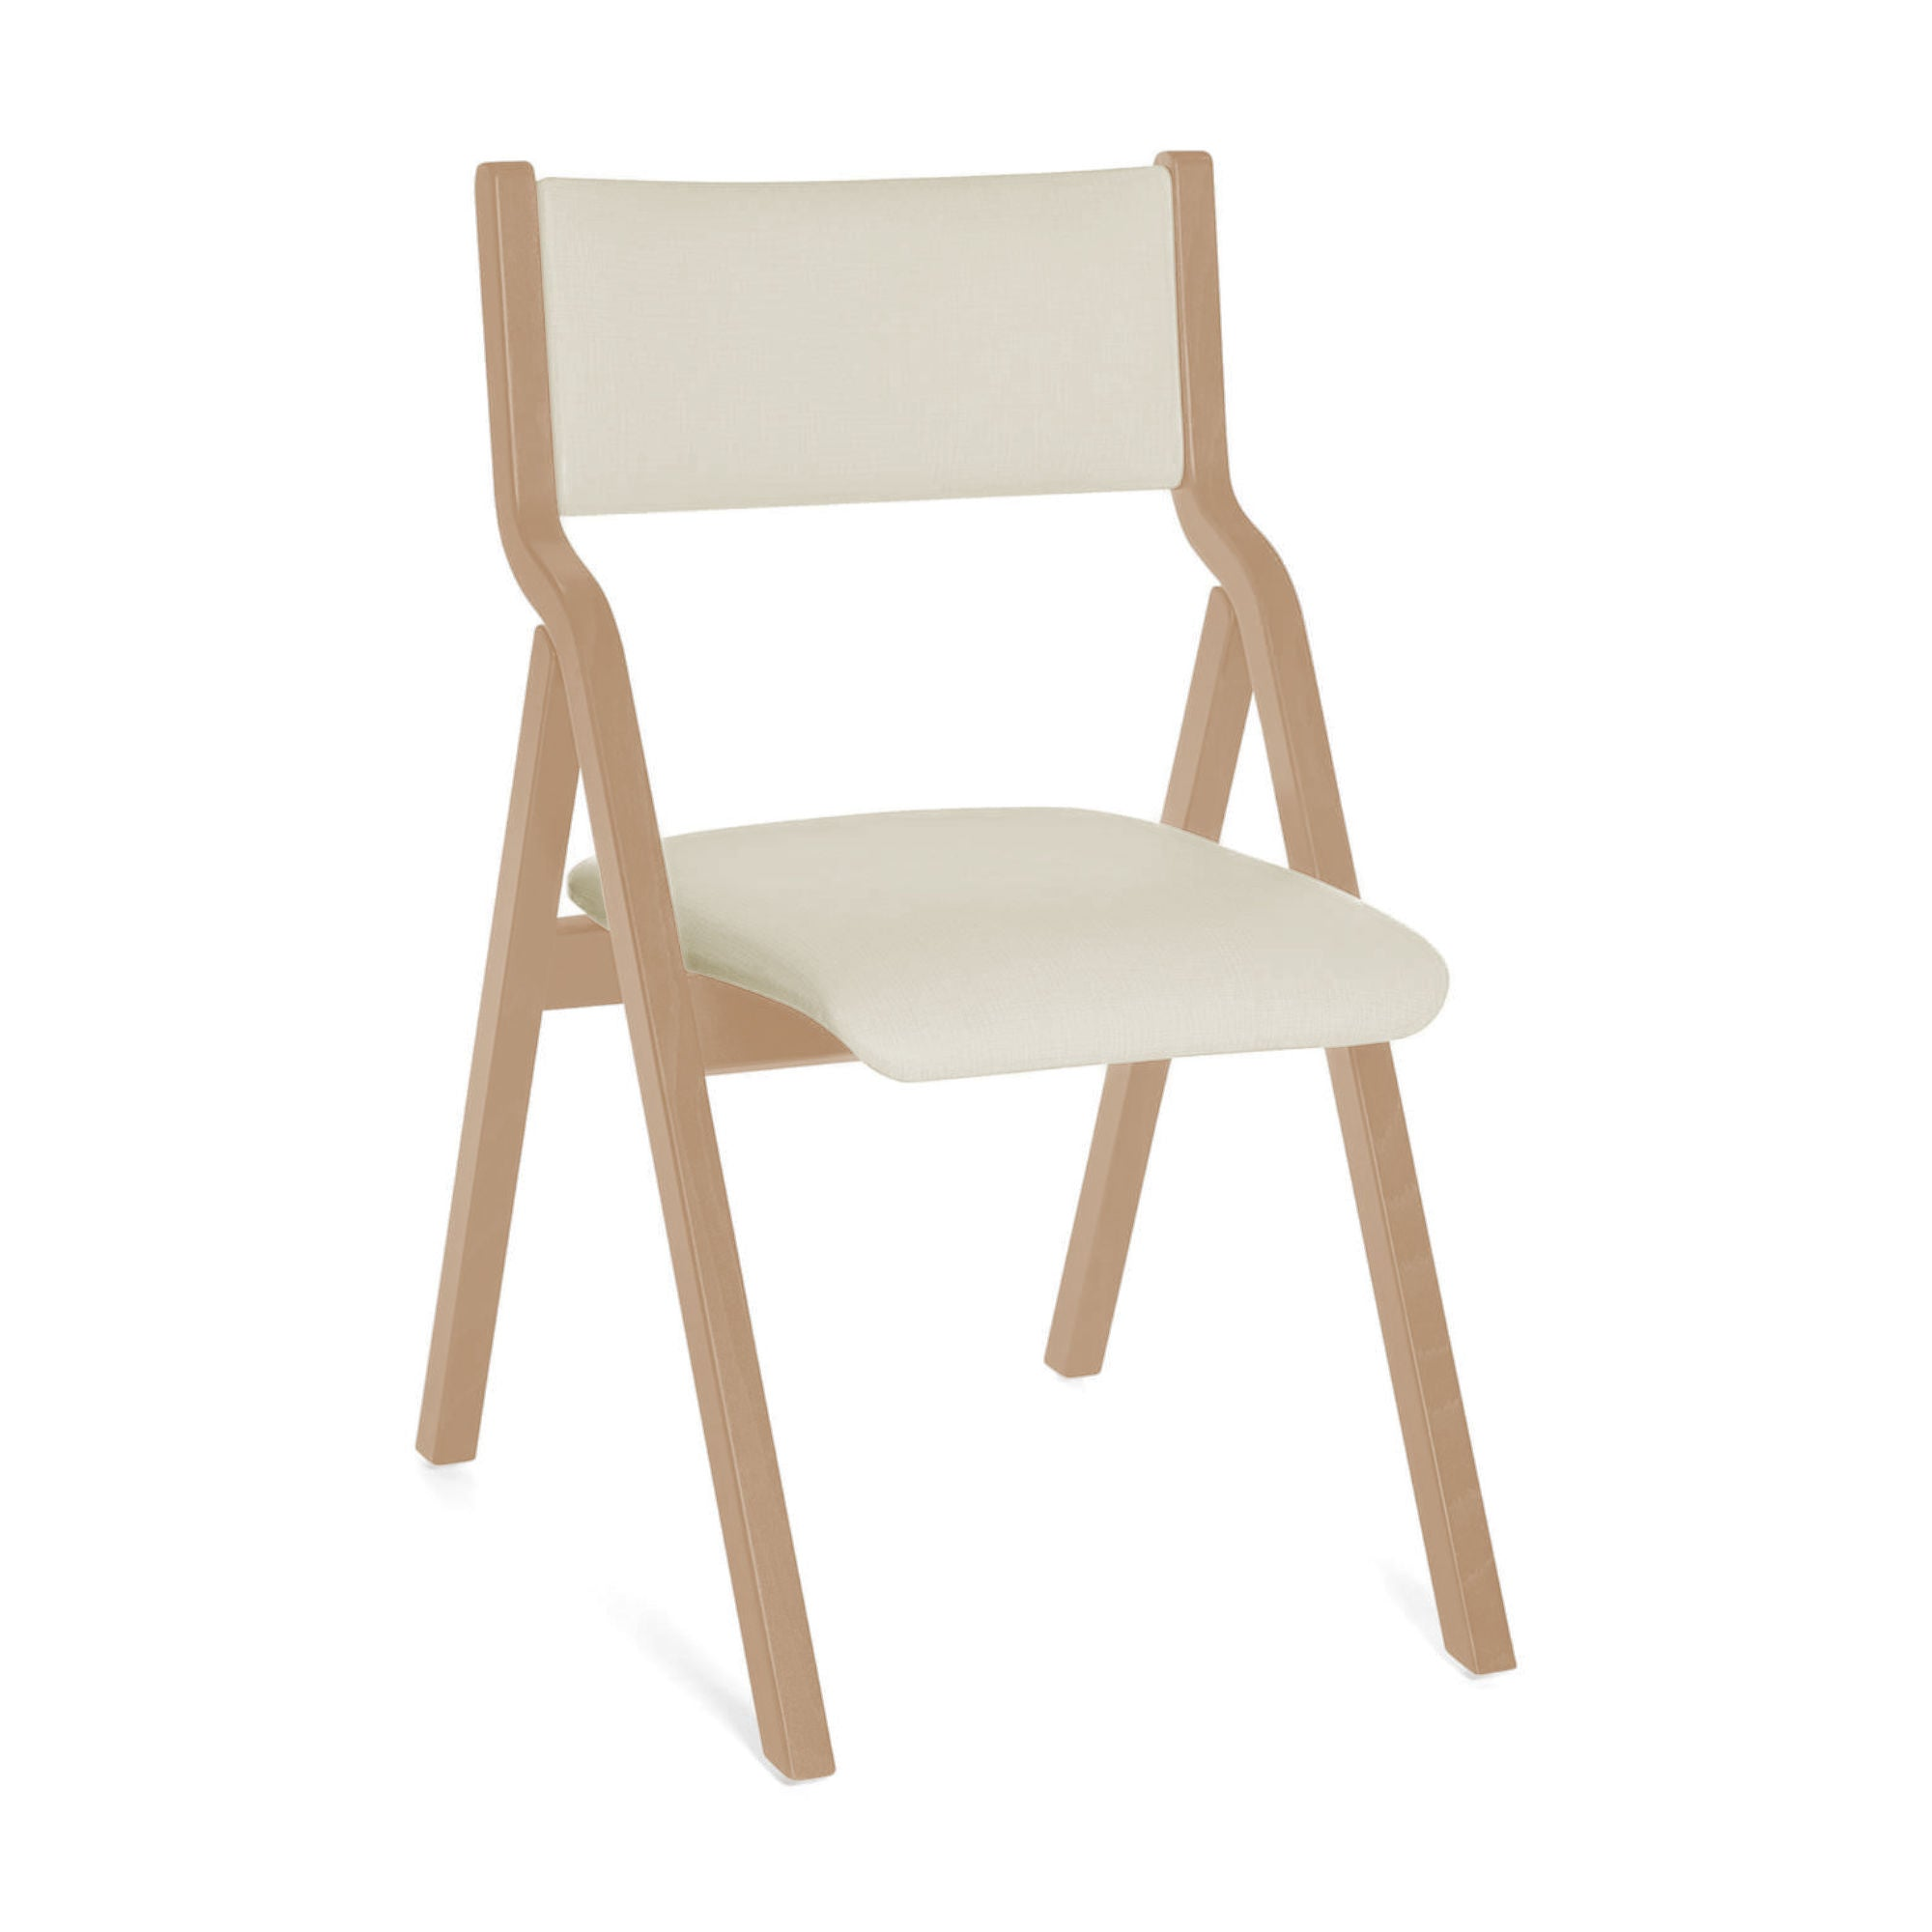 Stance Healthcare Kite Folding Chair , Natural-Beige